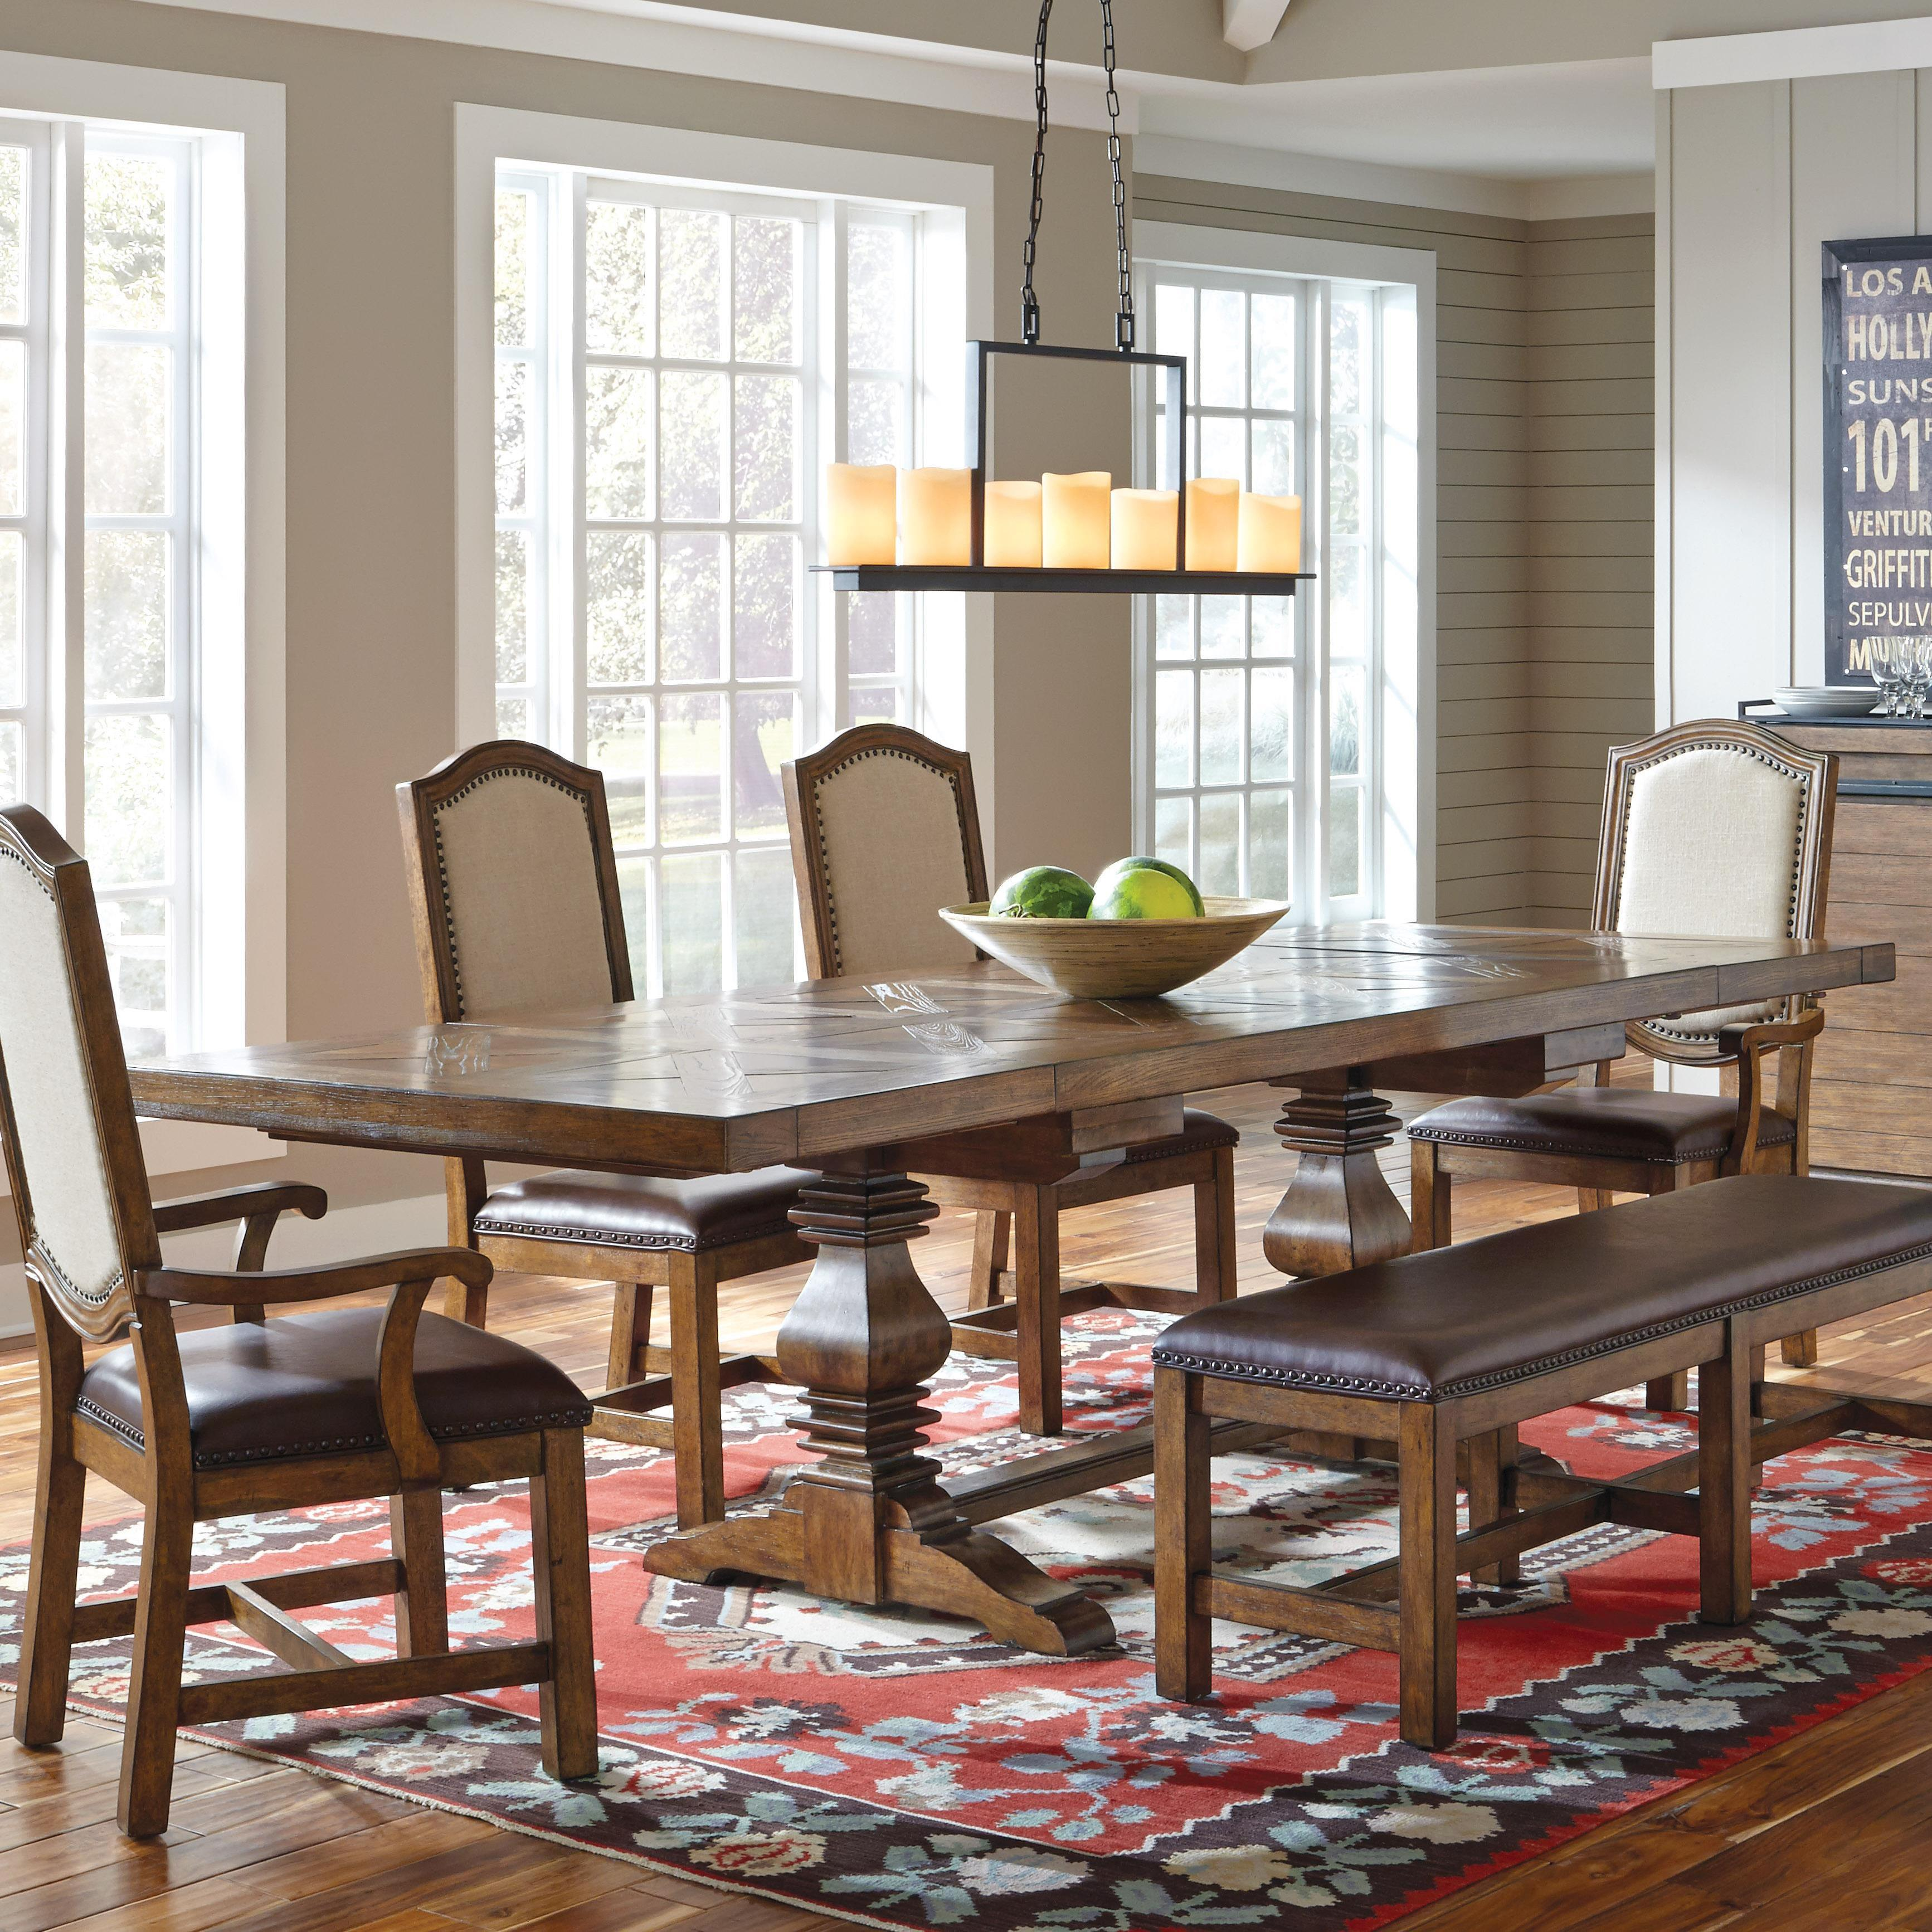 Belfort Select Virginia Mill Double Pedestal Dining Table - Item Number: 8854-131B-1+131A-3